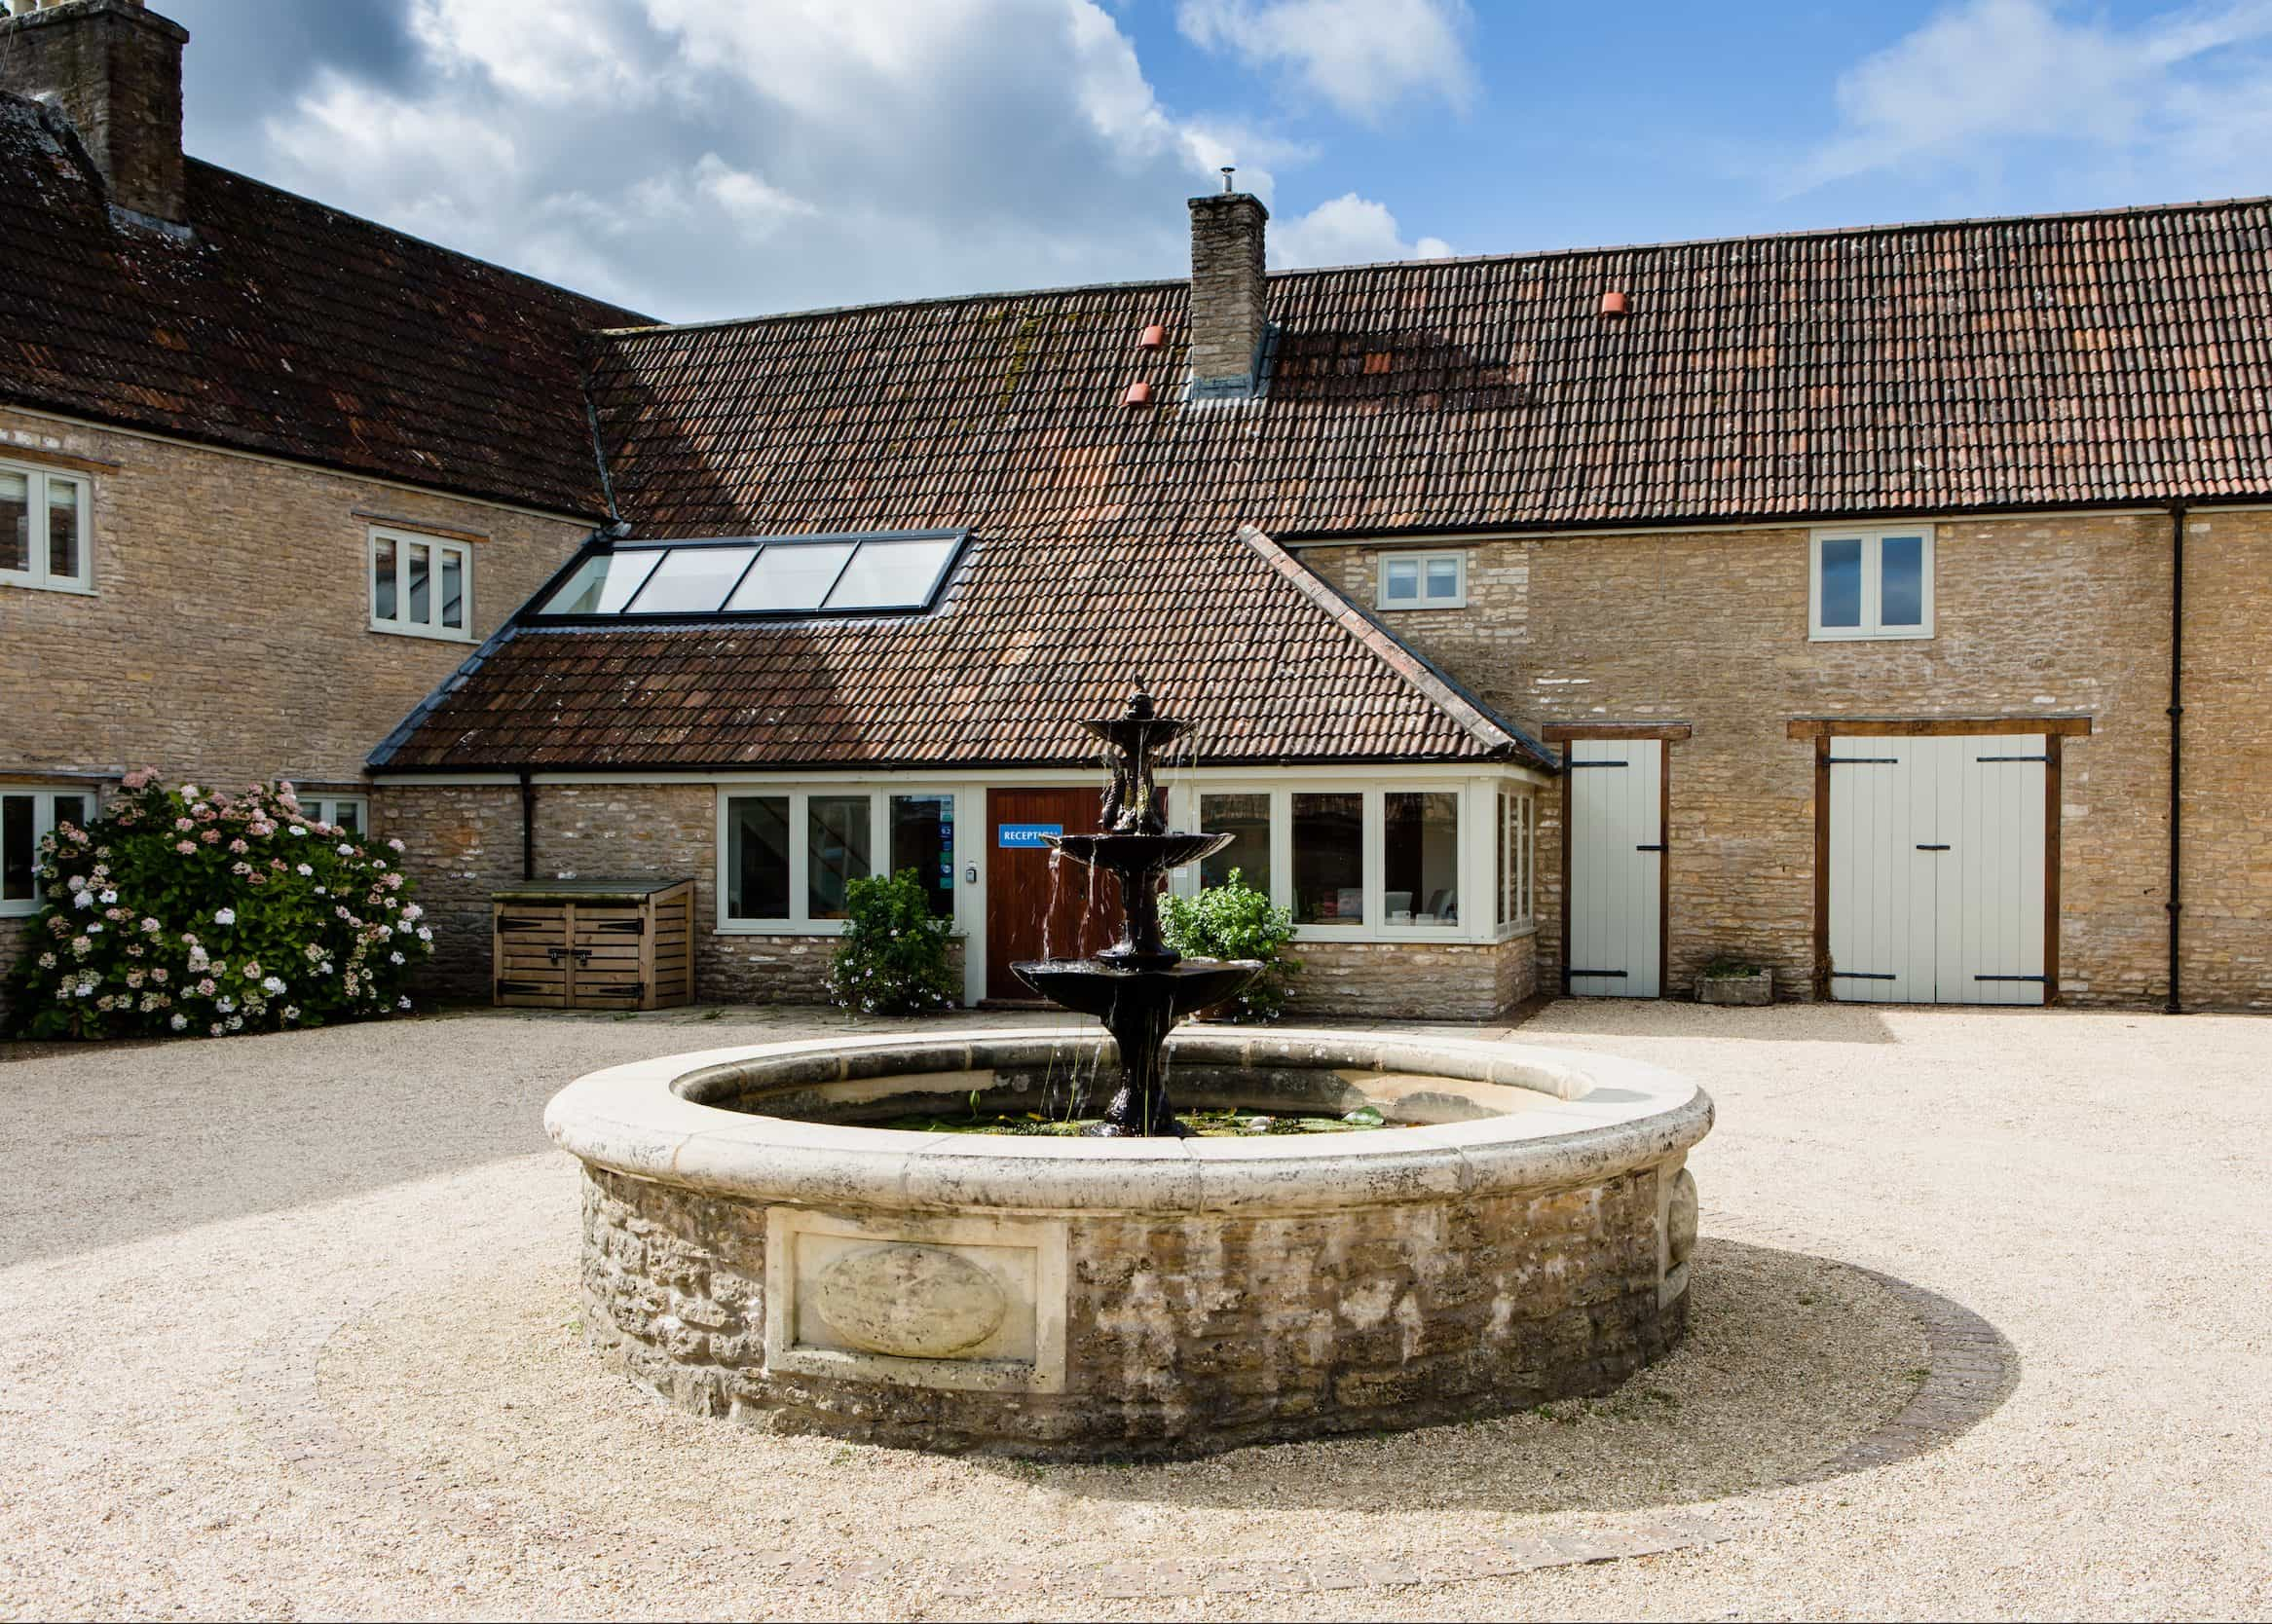 listed building conversion to hotel with cotswold stone and central round water fountain and rose bush with stable doors